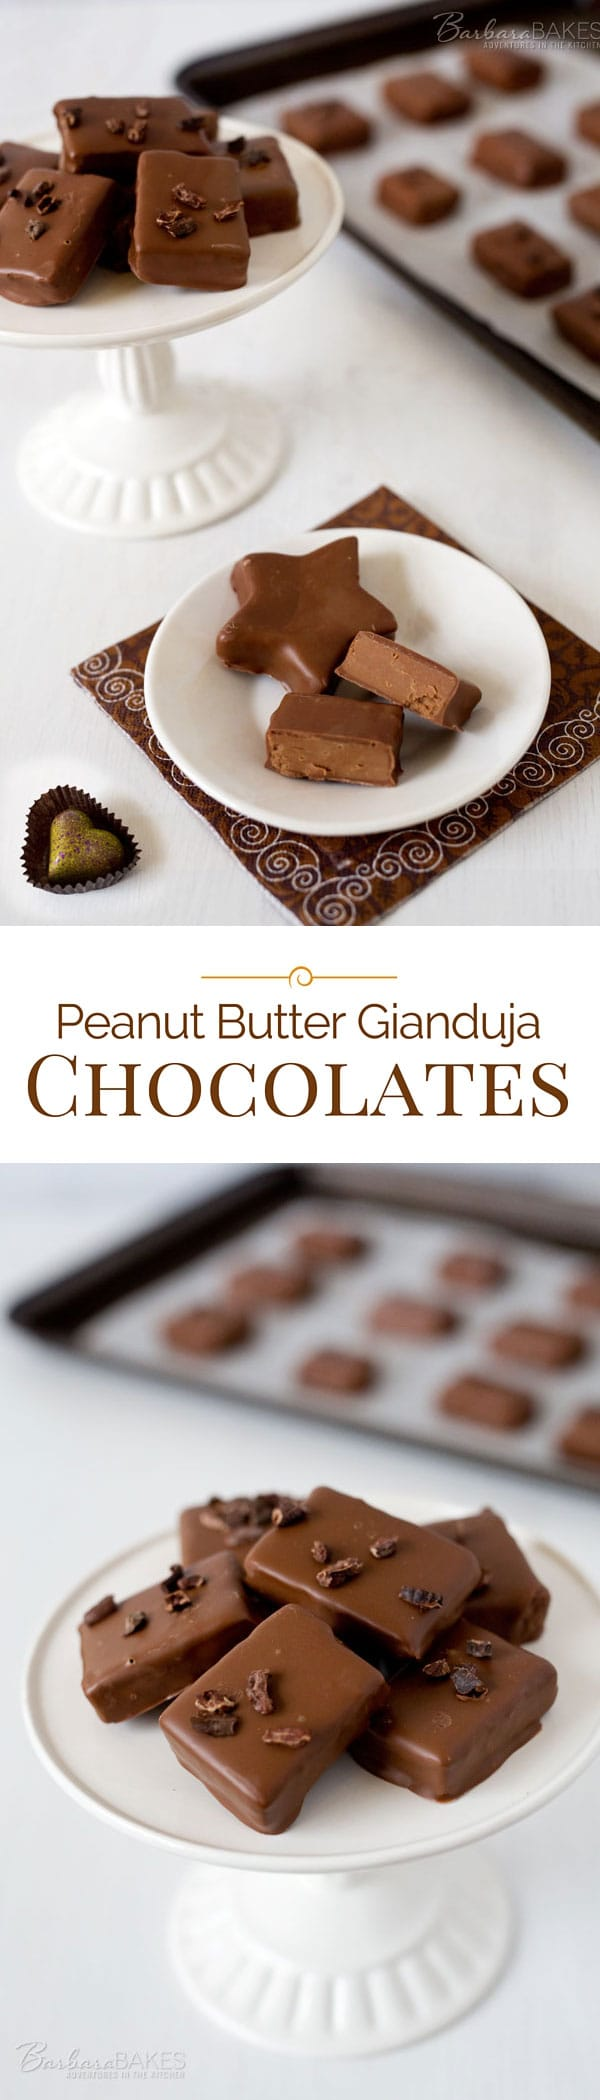 Peanut-Butter-Gianduja-Collage-Barbara-Bake